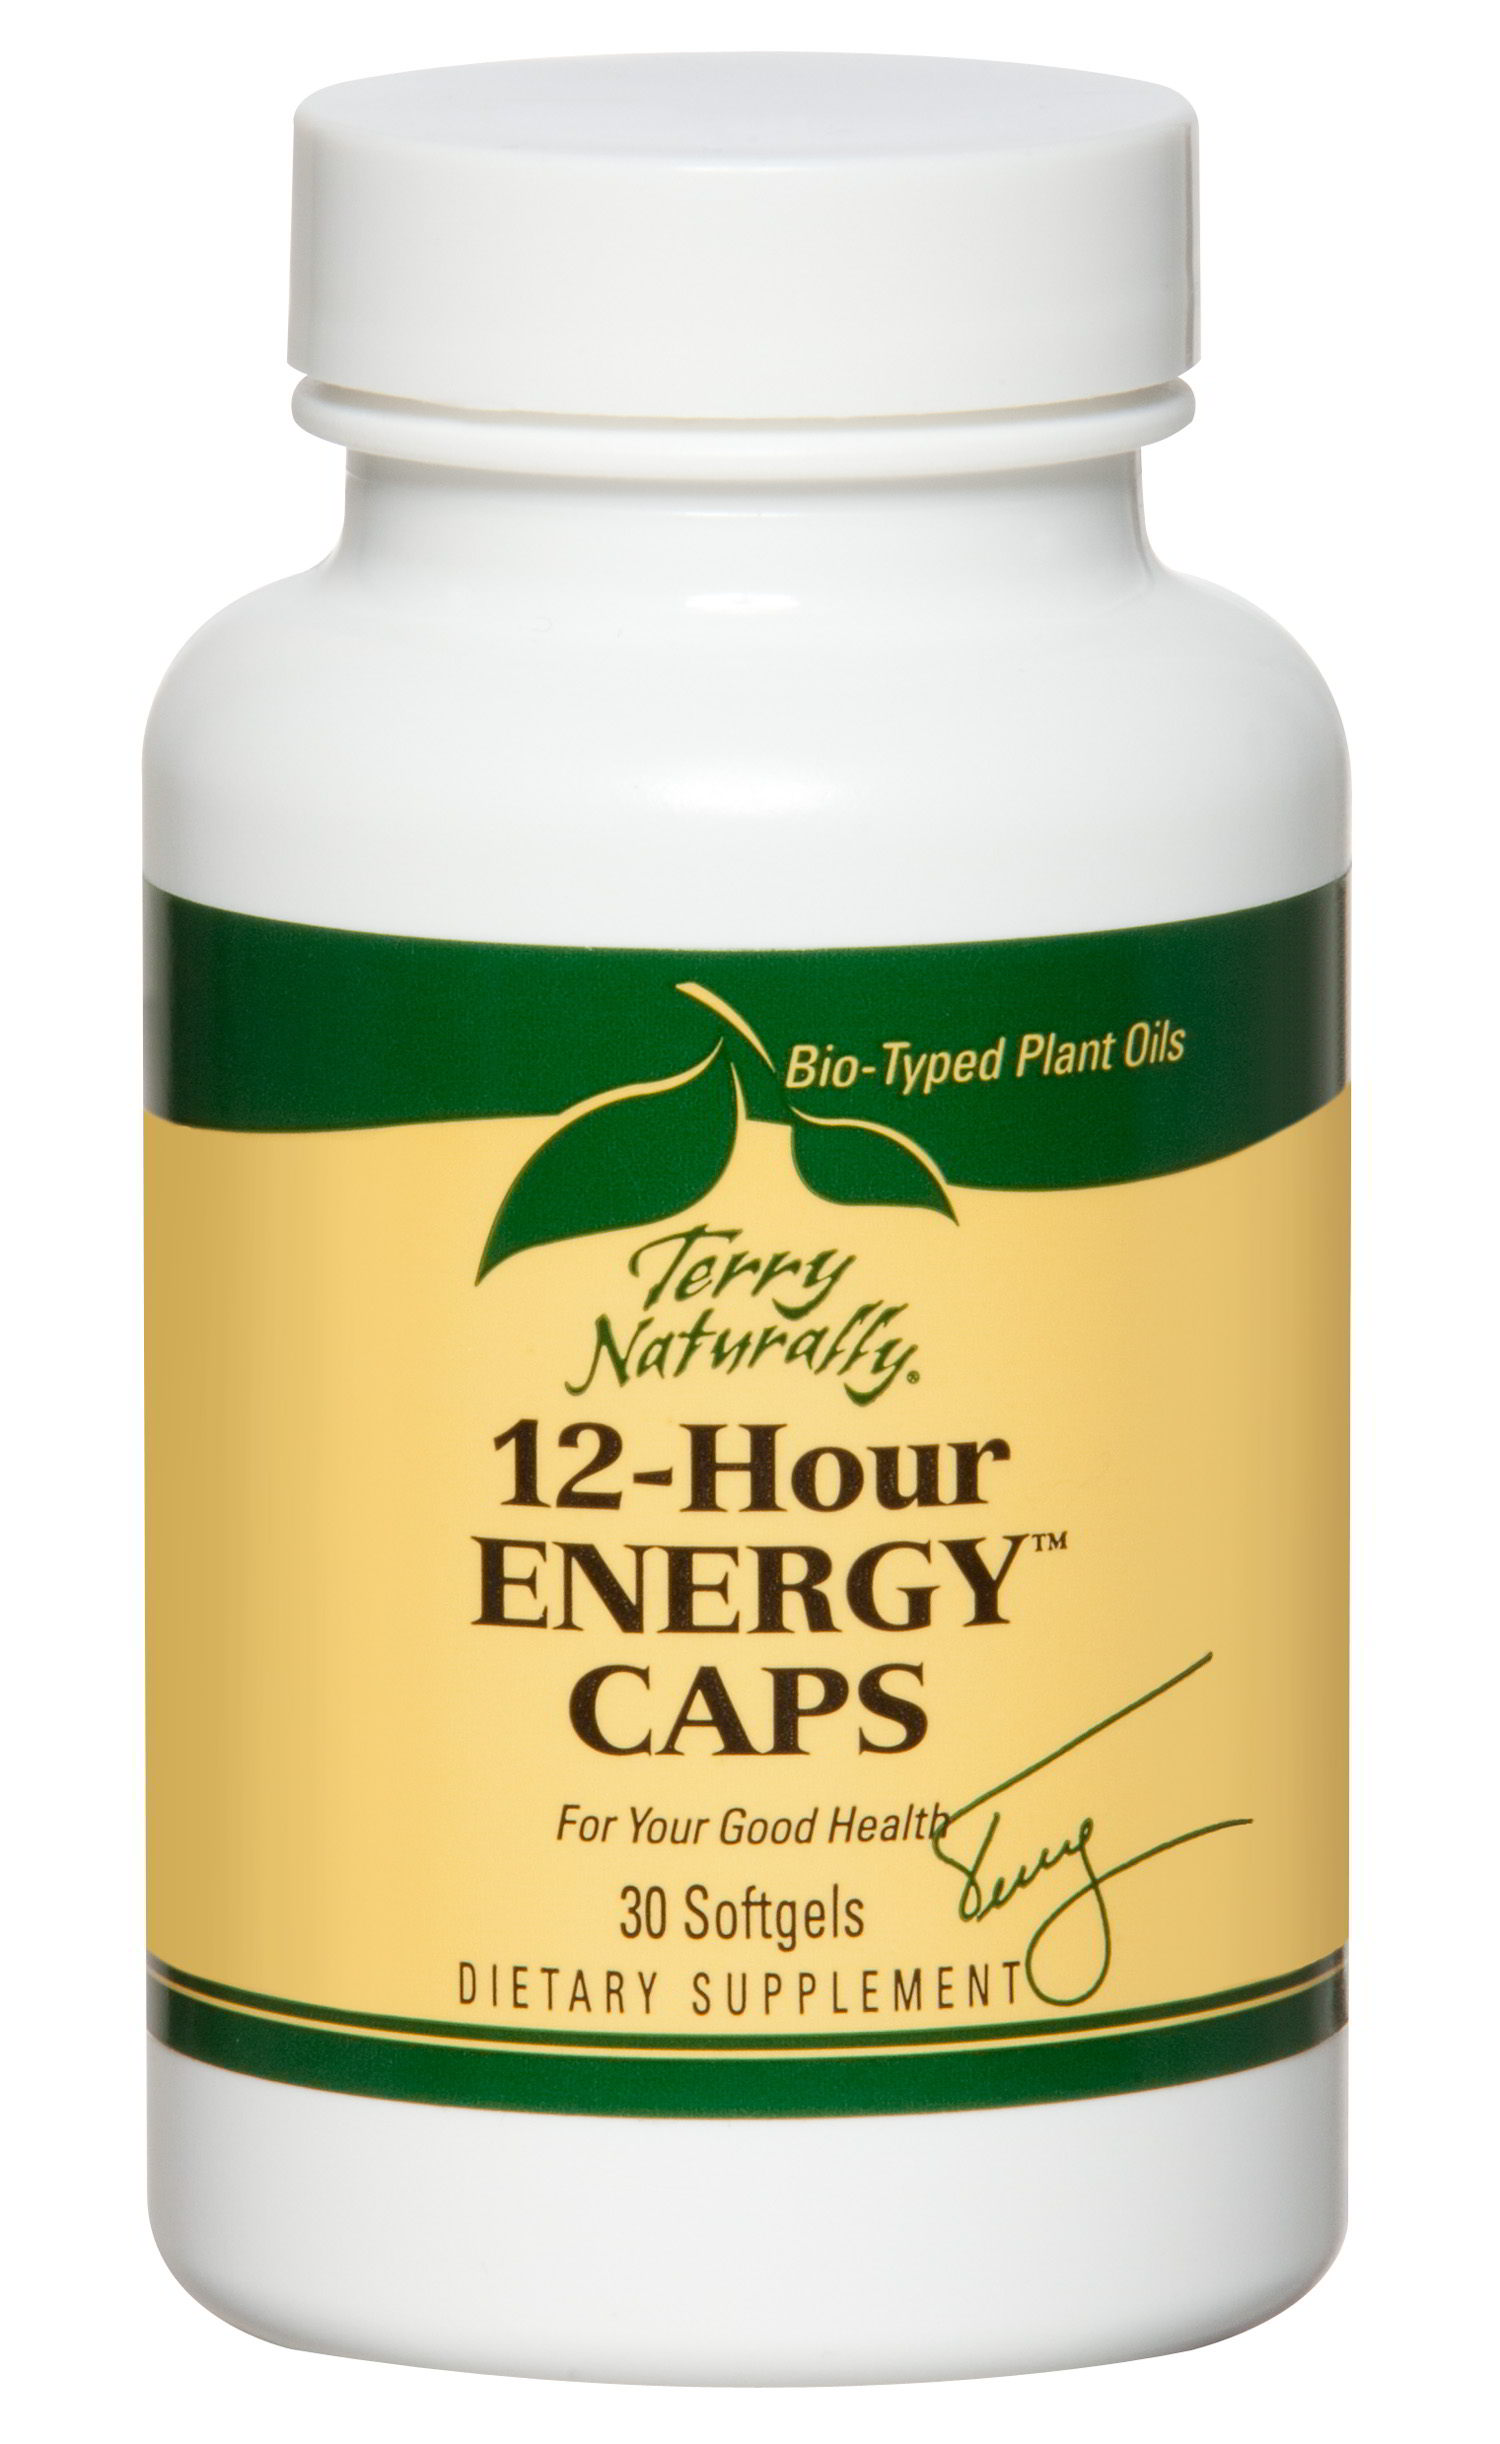 12-Hour ENERGY CAPS